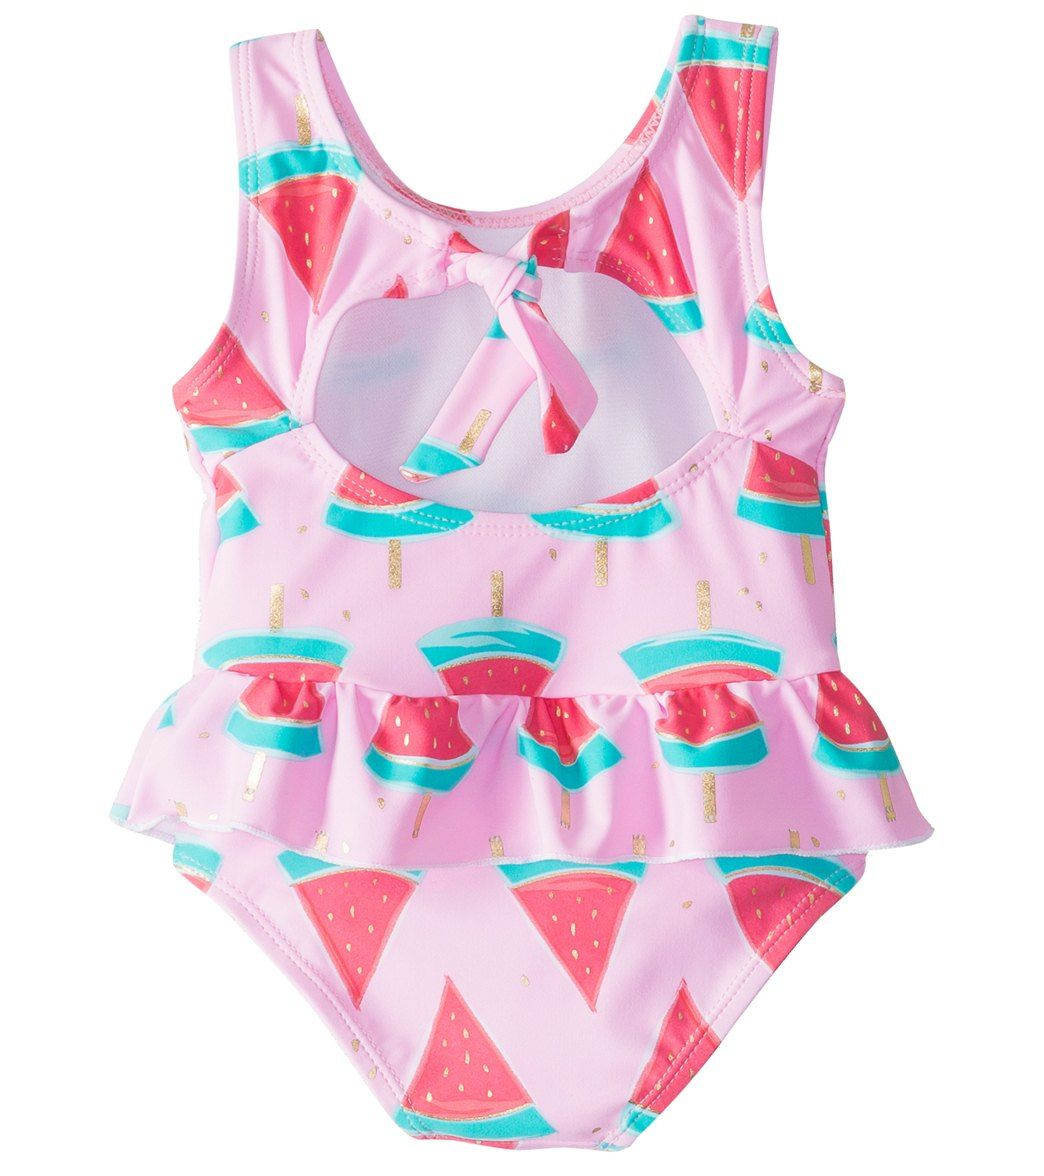 b9648d96d0647 Snapper Rock Girls' Watermelon Skirted One Piece Swimsuit (3-24mos) at  SwimOutlet.com – The Web's most popular swim shop